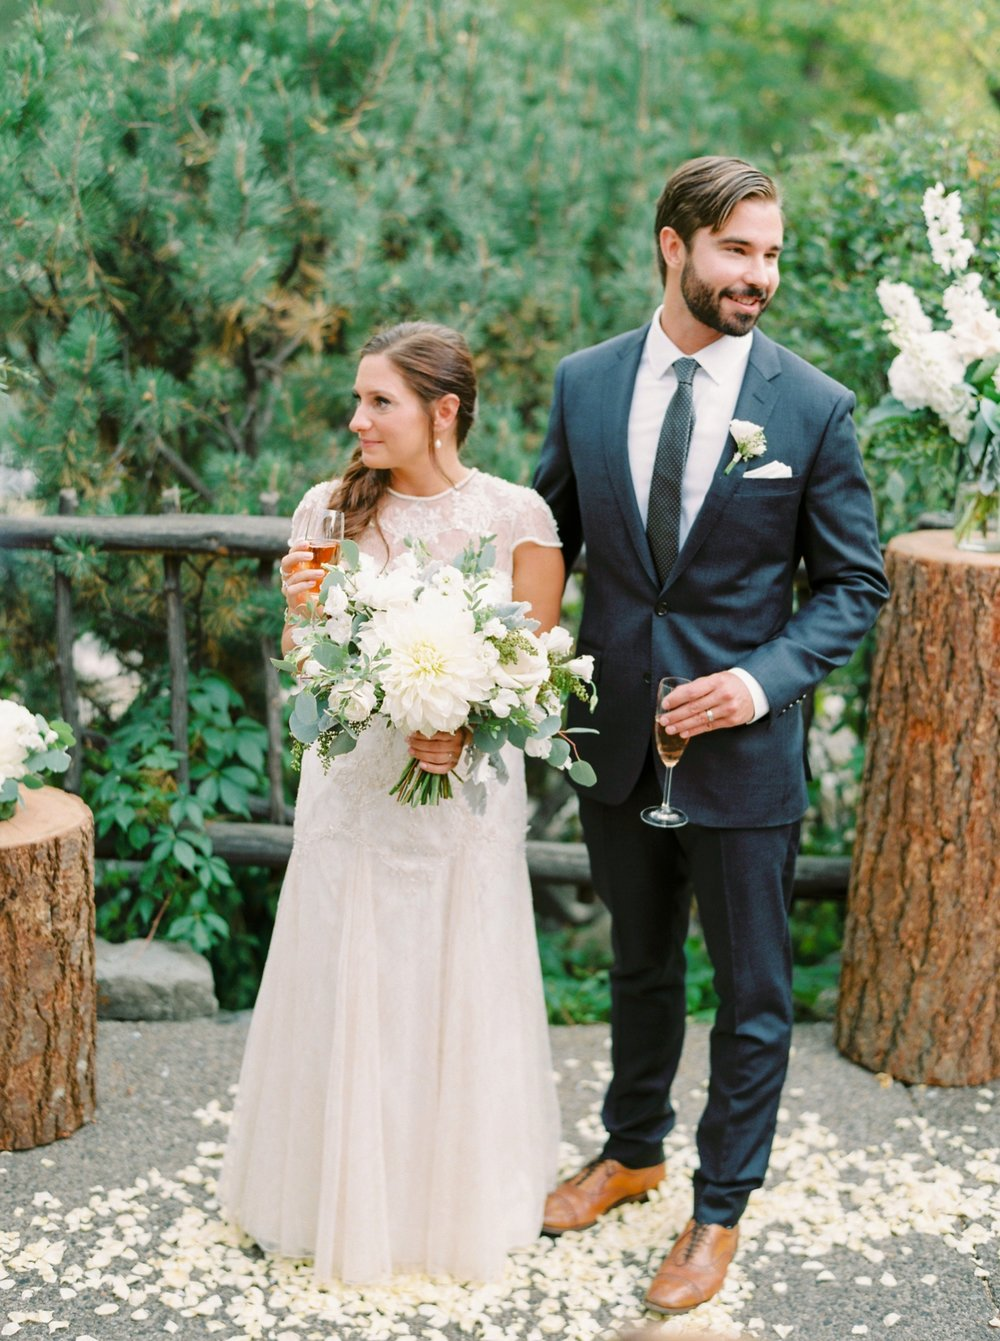 Calgary wedding photographers | fine art film | Justine Milton Photography | wedding inspiration | wedding chairs | wedding flowers | wedding ceremony | bride and groom | wedding vows